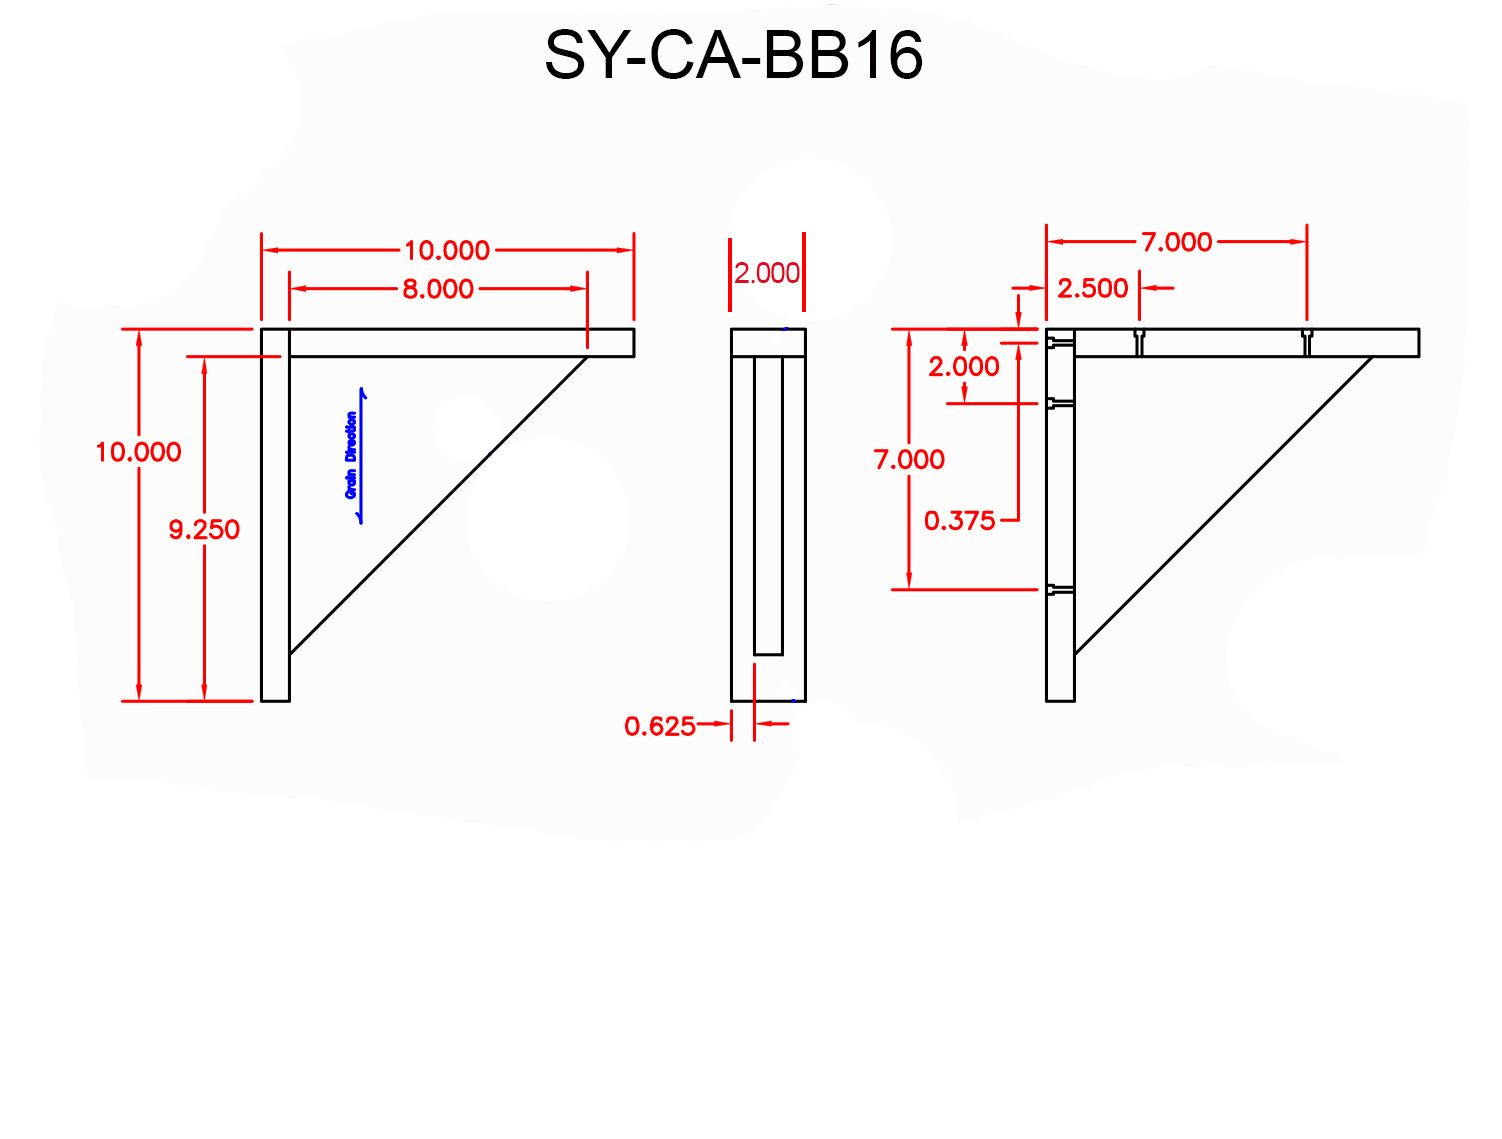 SY-CA-BB16 Line Drawing